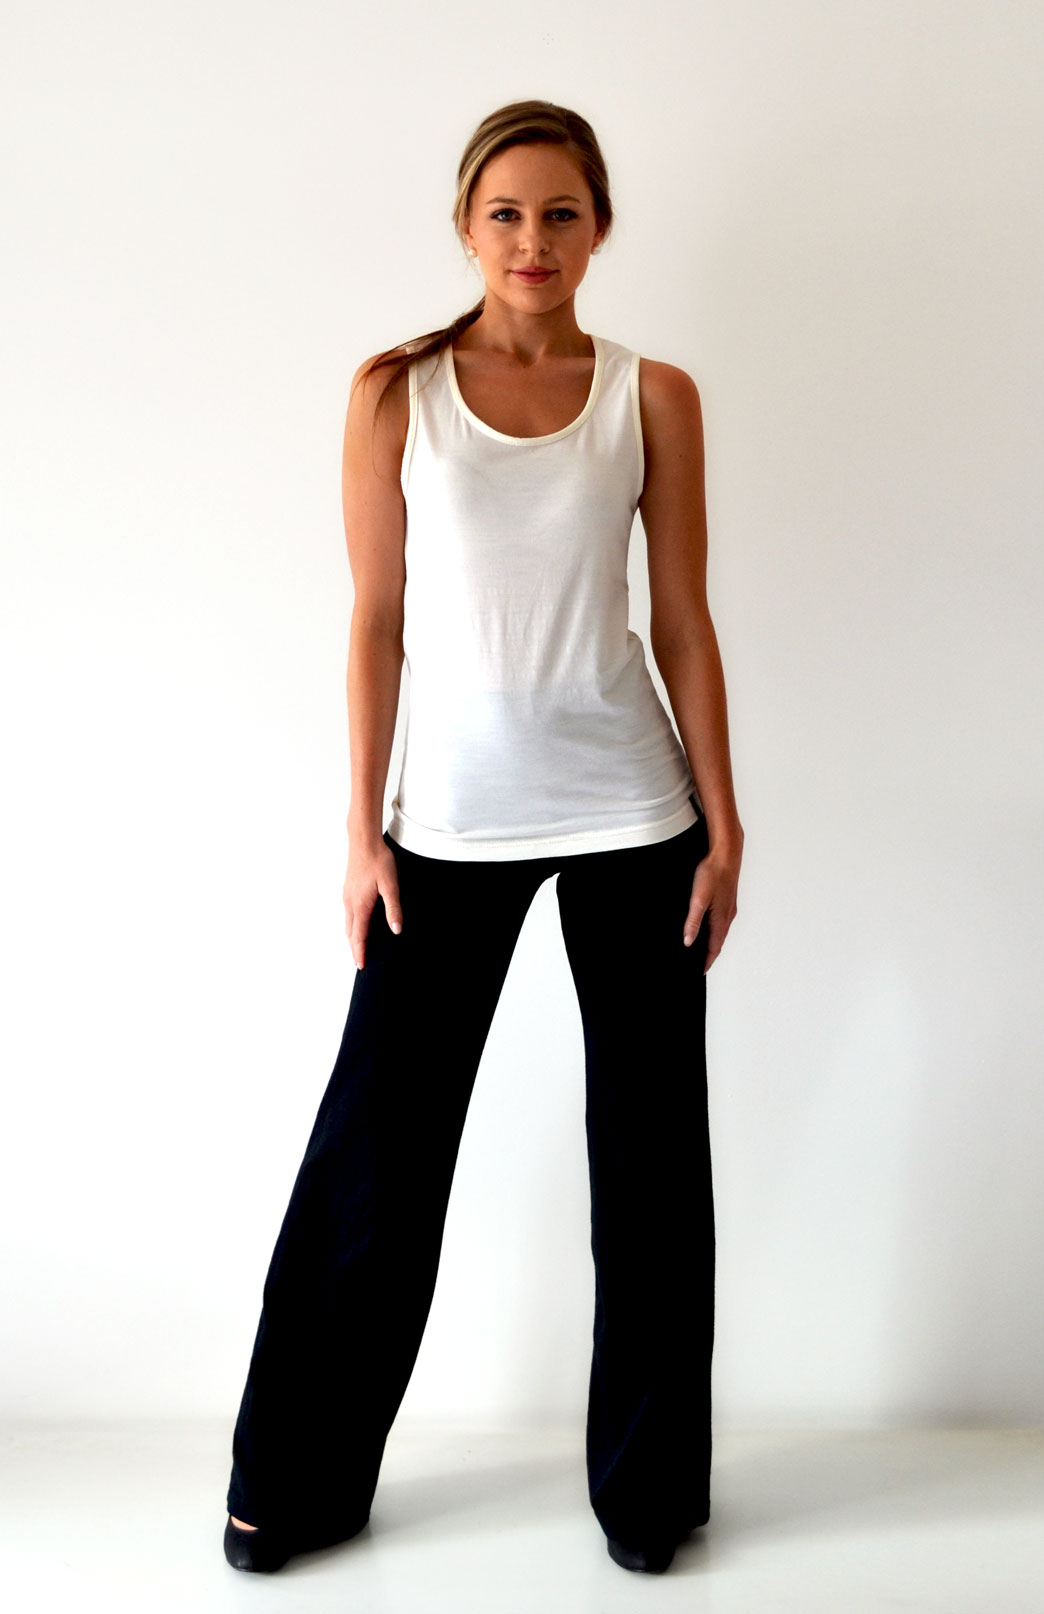 Scoop Neck Top - Sleeveless - Women's Ivory Sleeveless Scoop Neck Wool Top - Smitten Merino Tasmania Australia